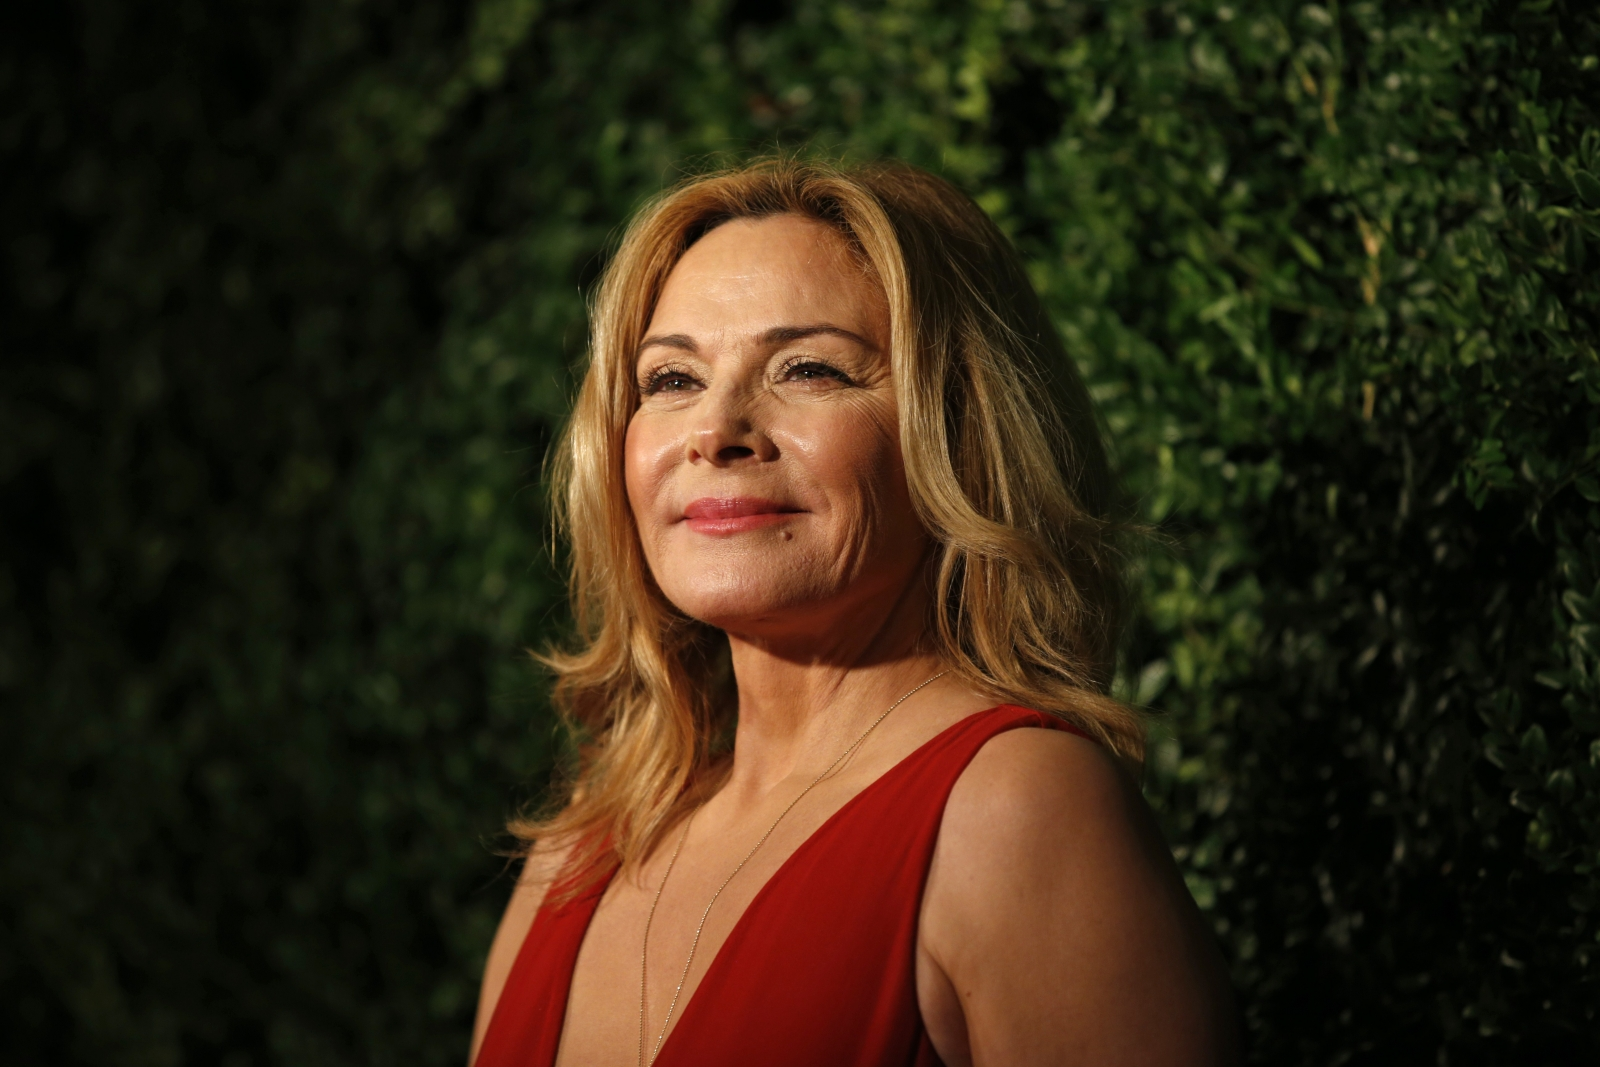 Kim Cattrall 60th birthday: Star Trek, The Ghost Writer ... Kim Cattrall